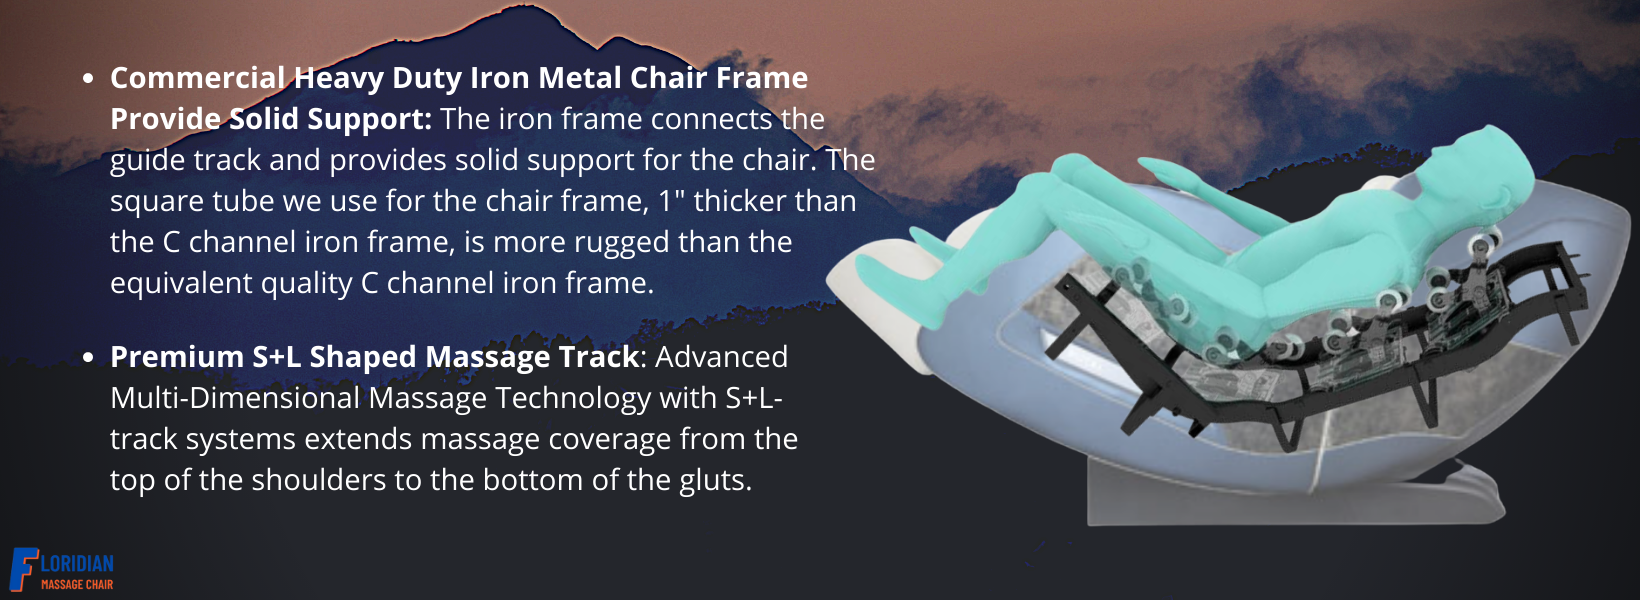 """The iron frame connects the guide track and provides solid support for the chair. The square tube we use for the chair frame, 1"""" thicker than the C channel iron frame, is more rugged than the equivalent quality C channel iron frame. Premium S+L Shaped Massage Track: Advanced Multi-Dimensional Massage Technology with S+L-track systems extends massage coverage from the top of the shoulders to the bottom of the gluts."""